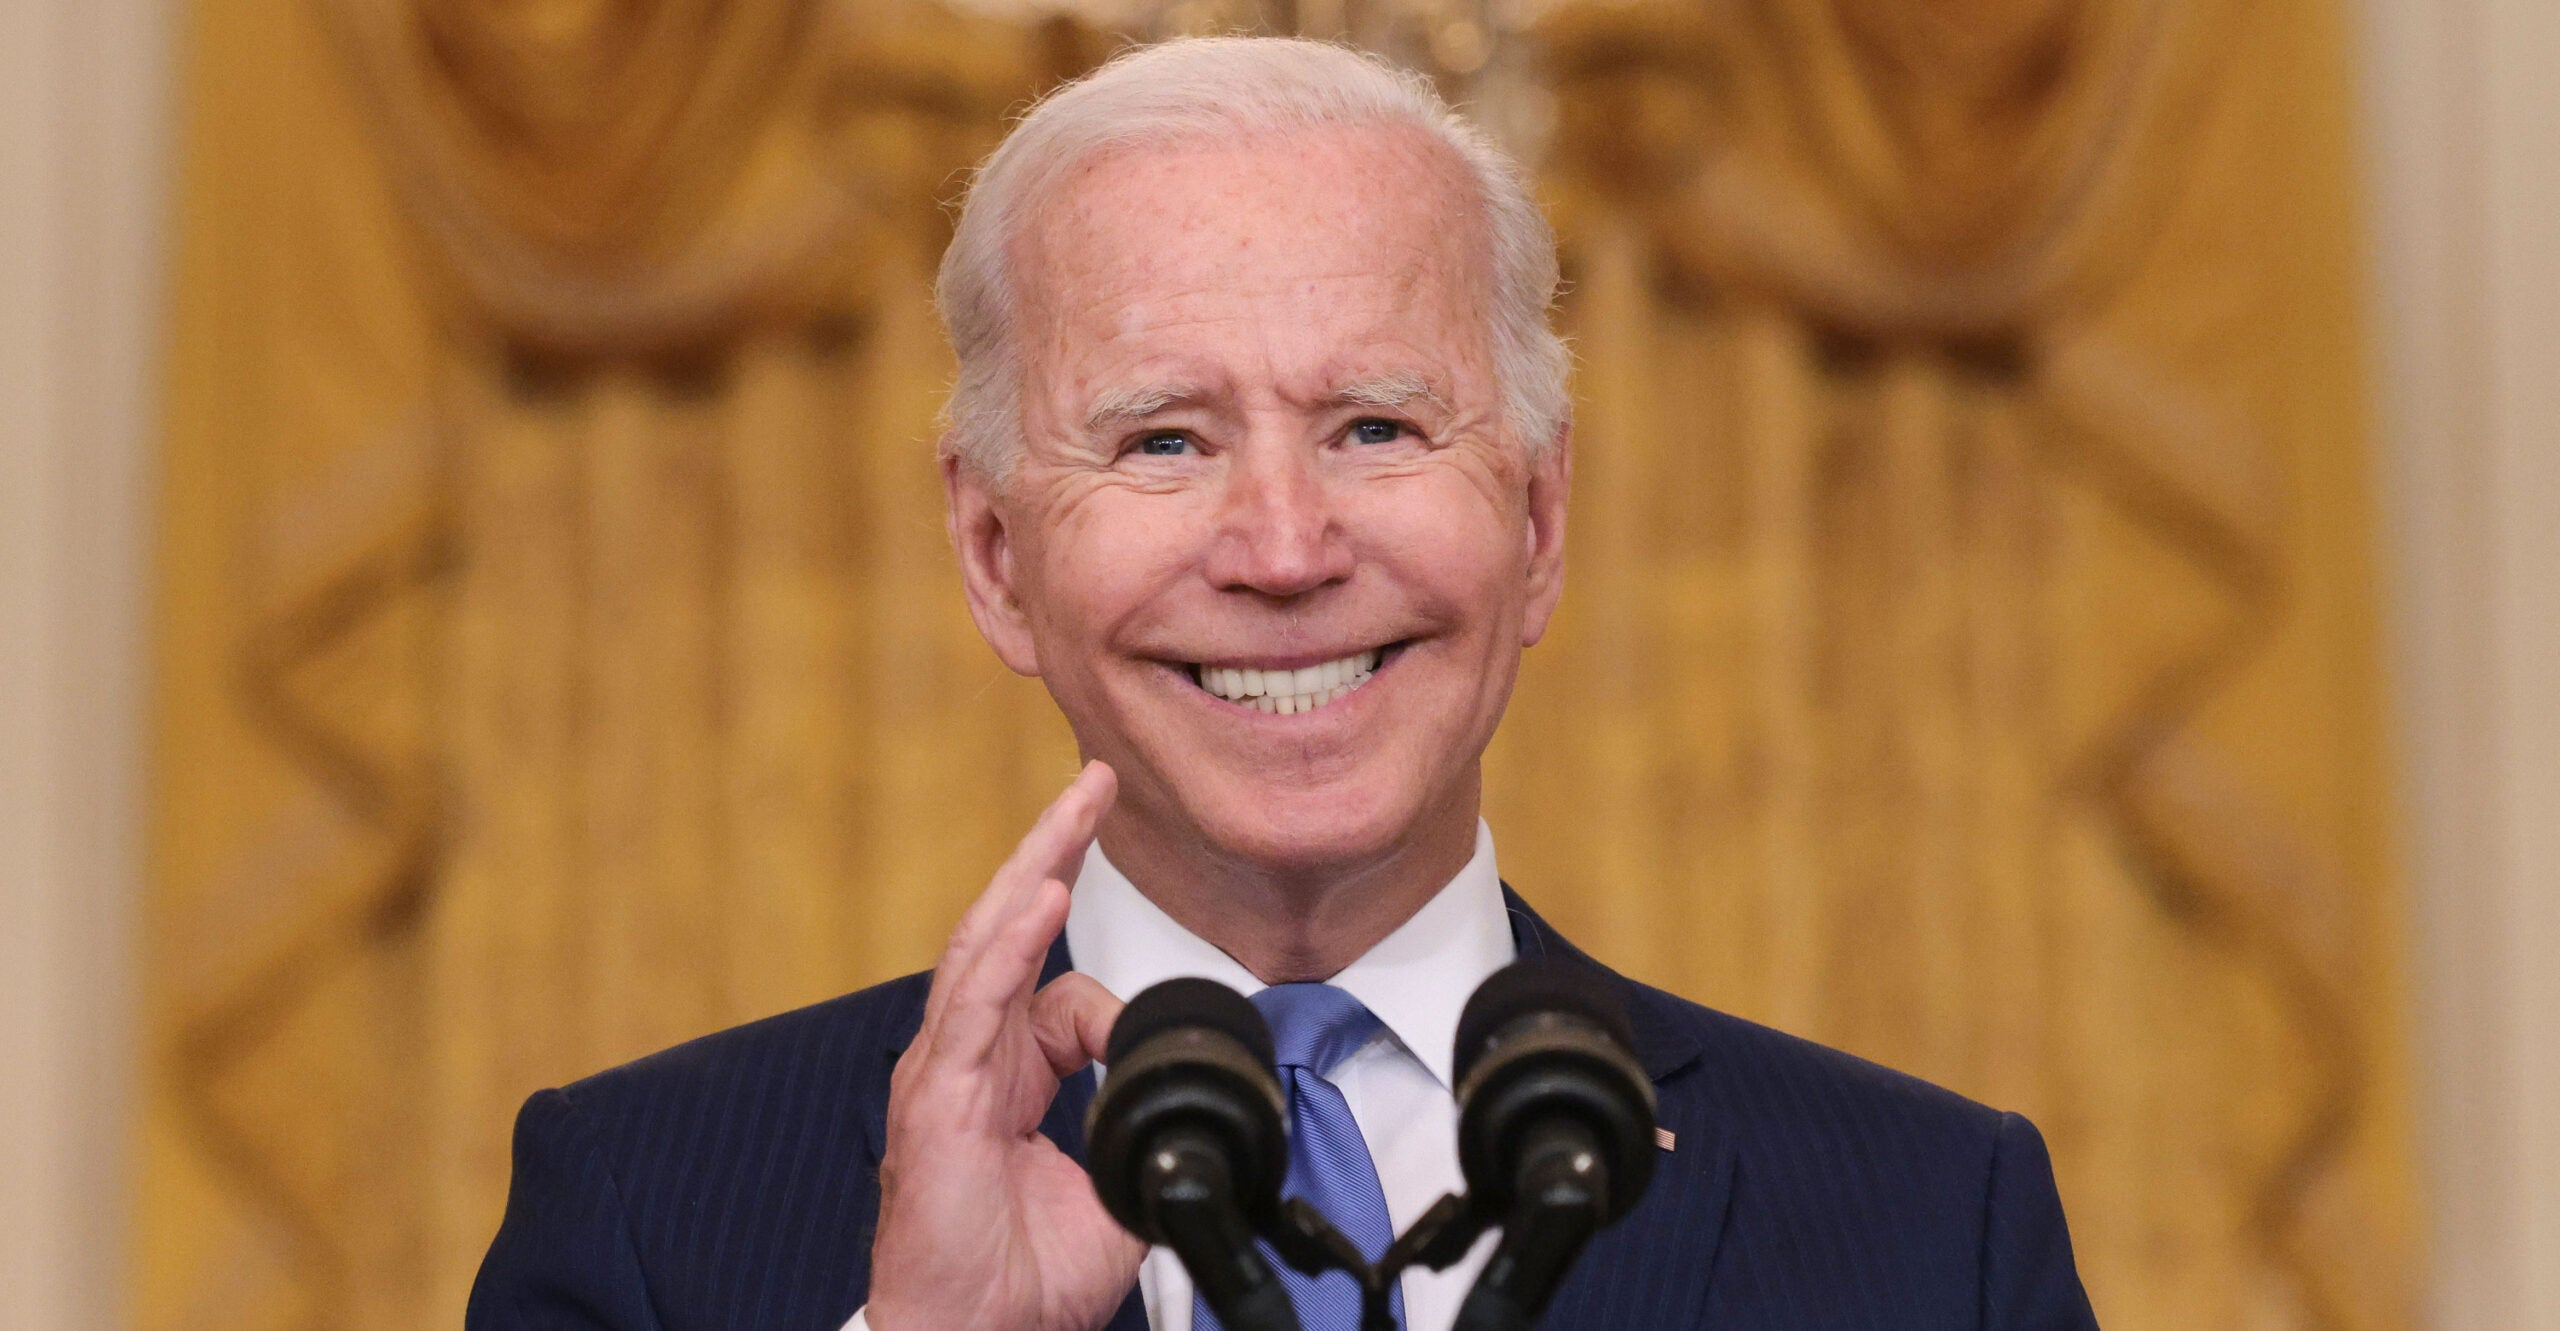 Twitter and the 'Fact-Checkers' Line Up for Biden